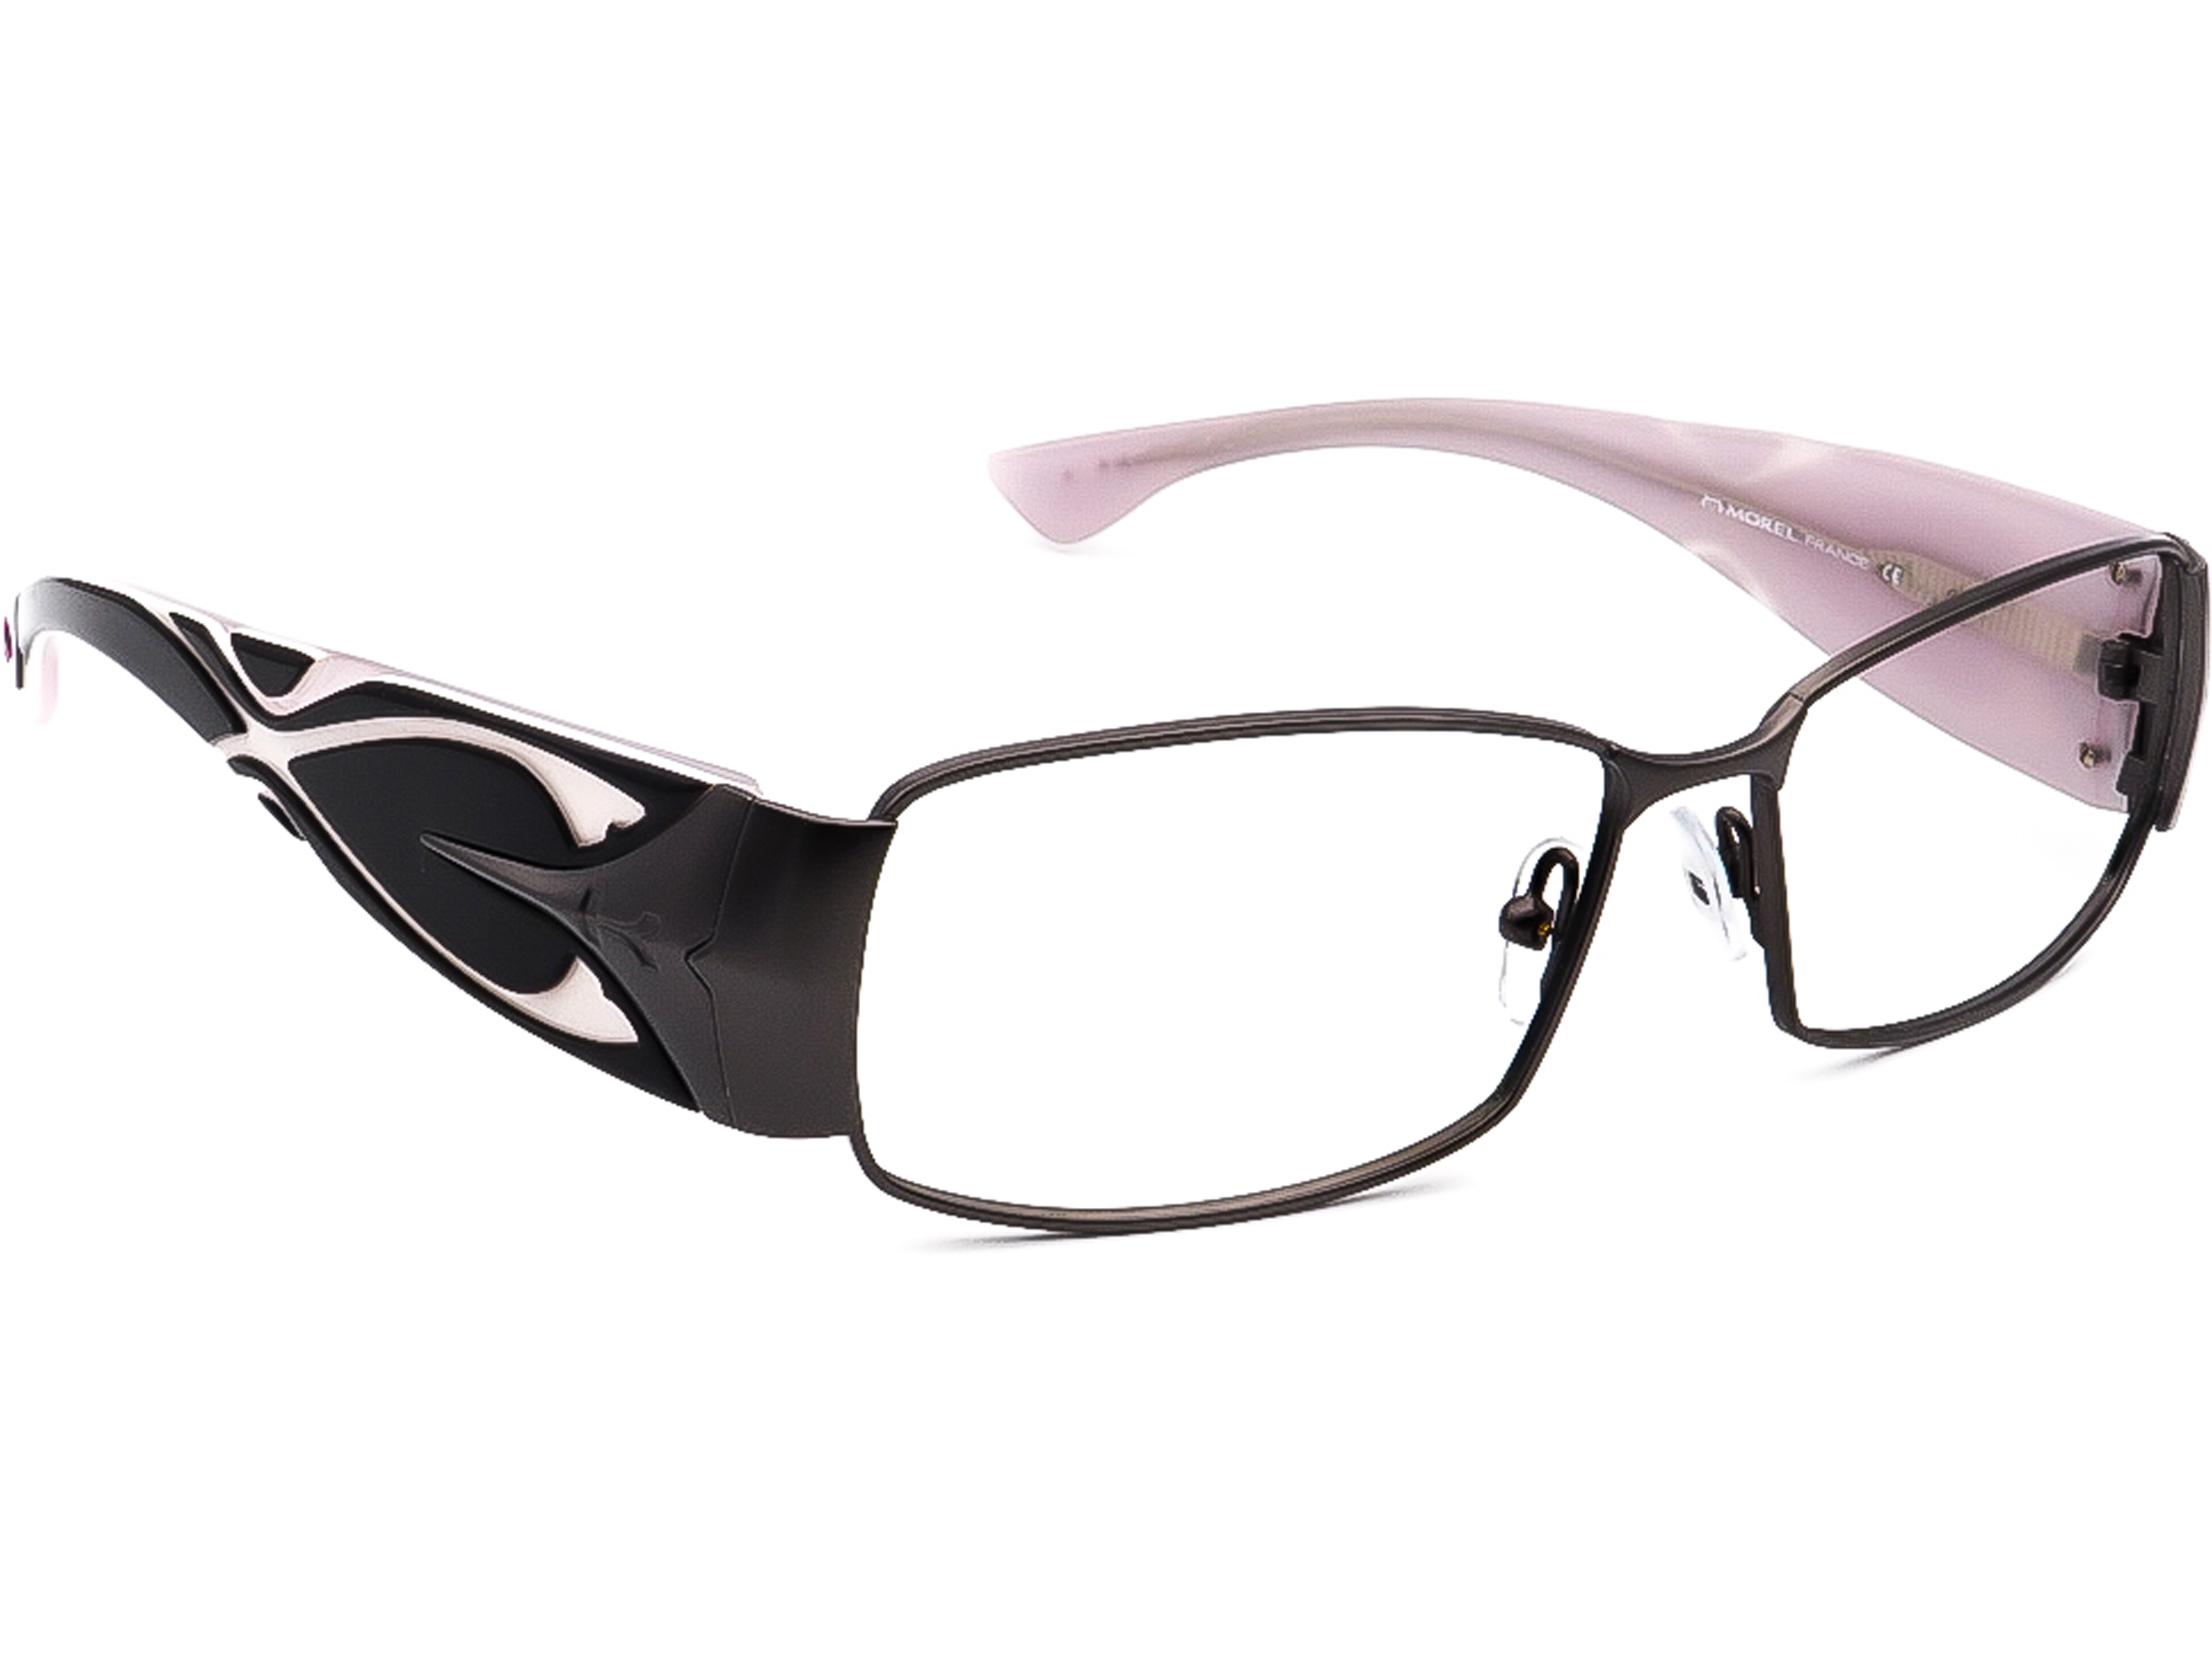 Morel Koali 6402K RF000 Sunglasses Frame Only